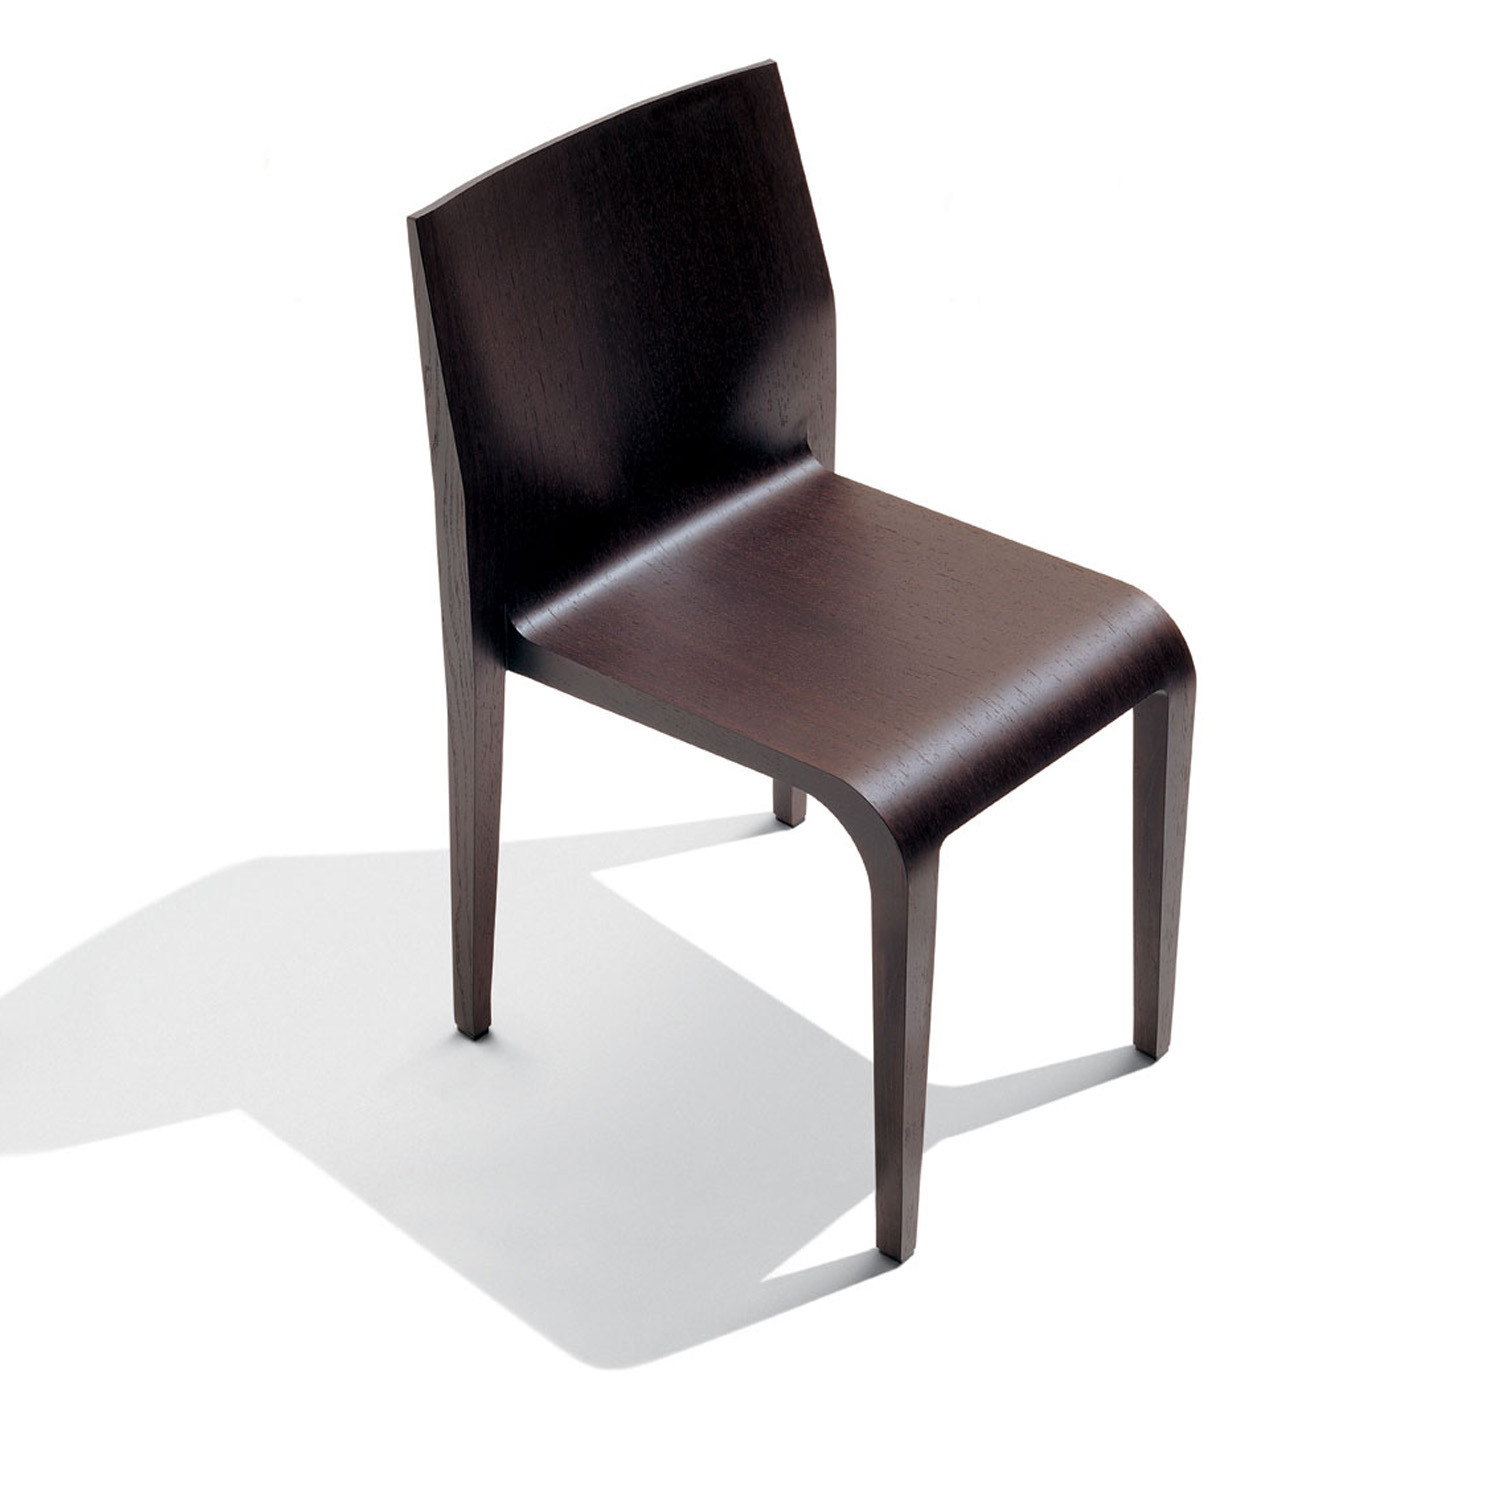 Laleggera Chair in Canaletto Walnut Wood